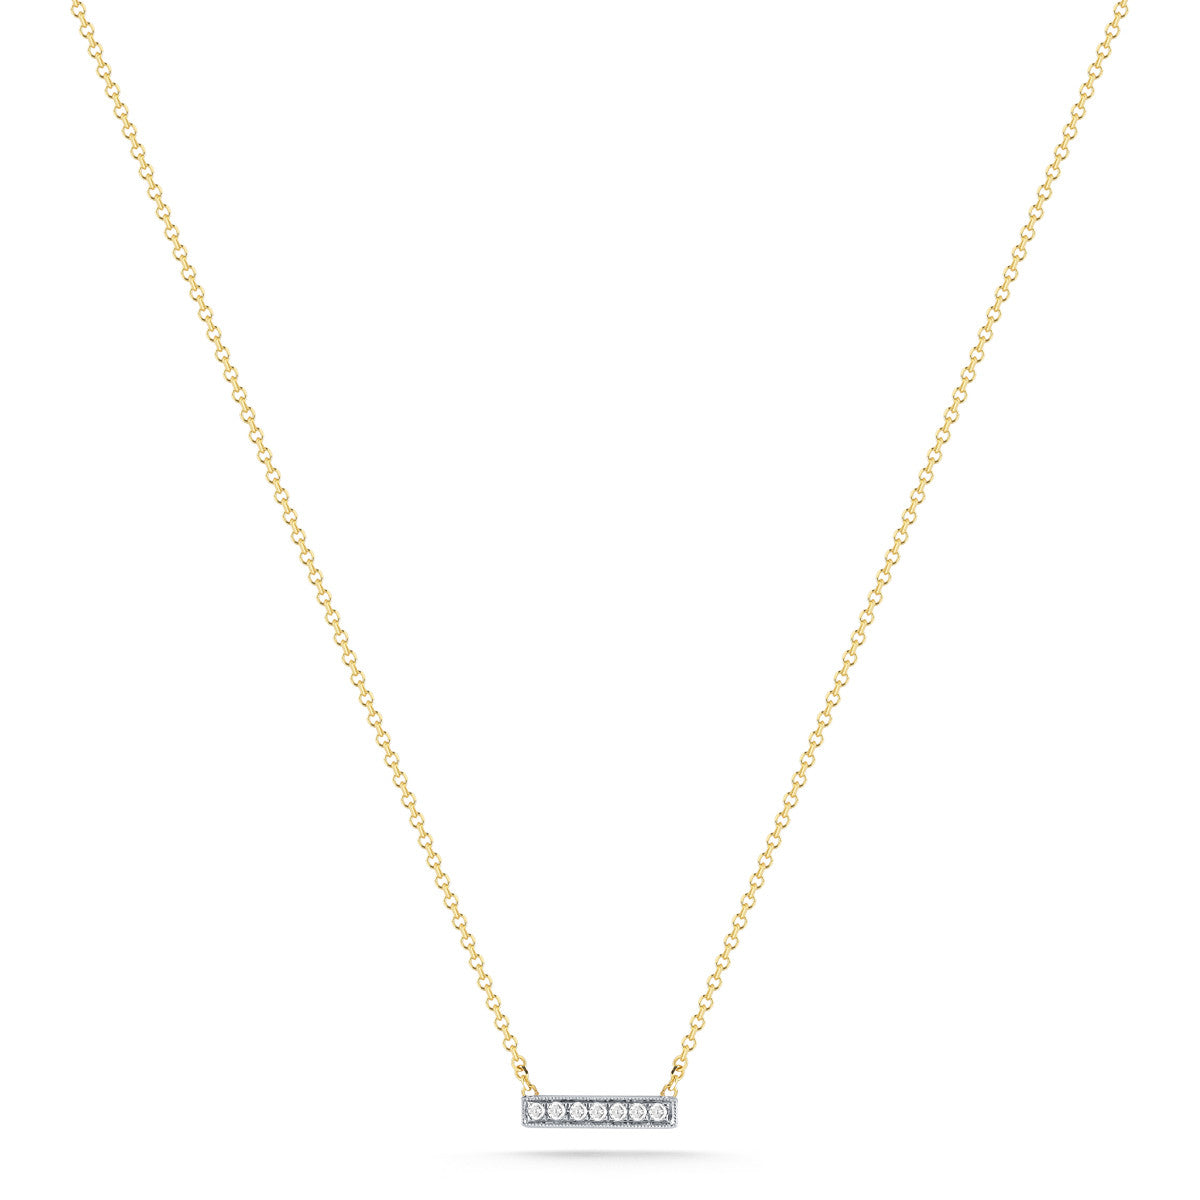 14K Yellow Gold Mini Diamond Pave Bar Necklace